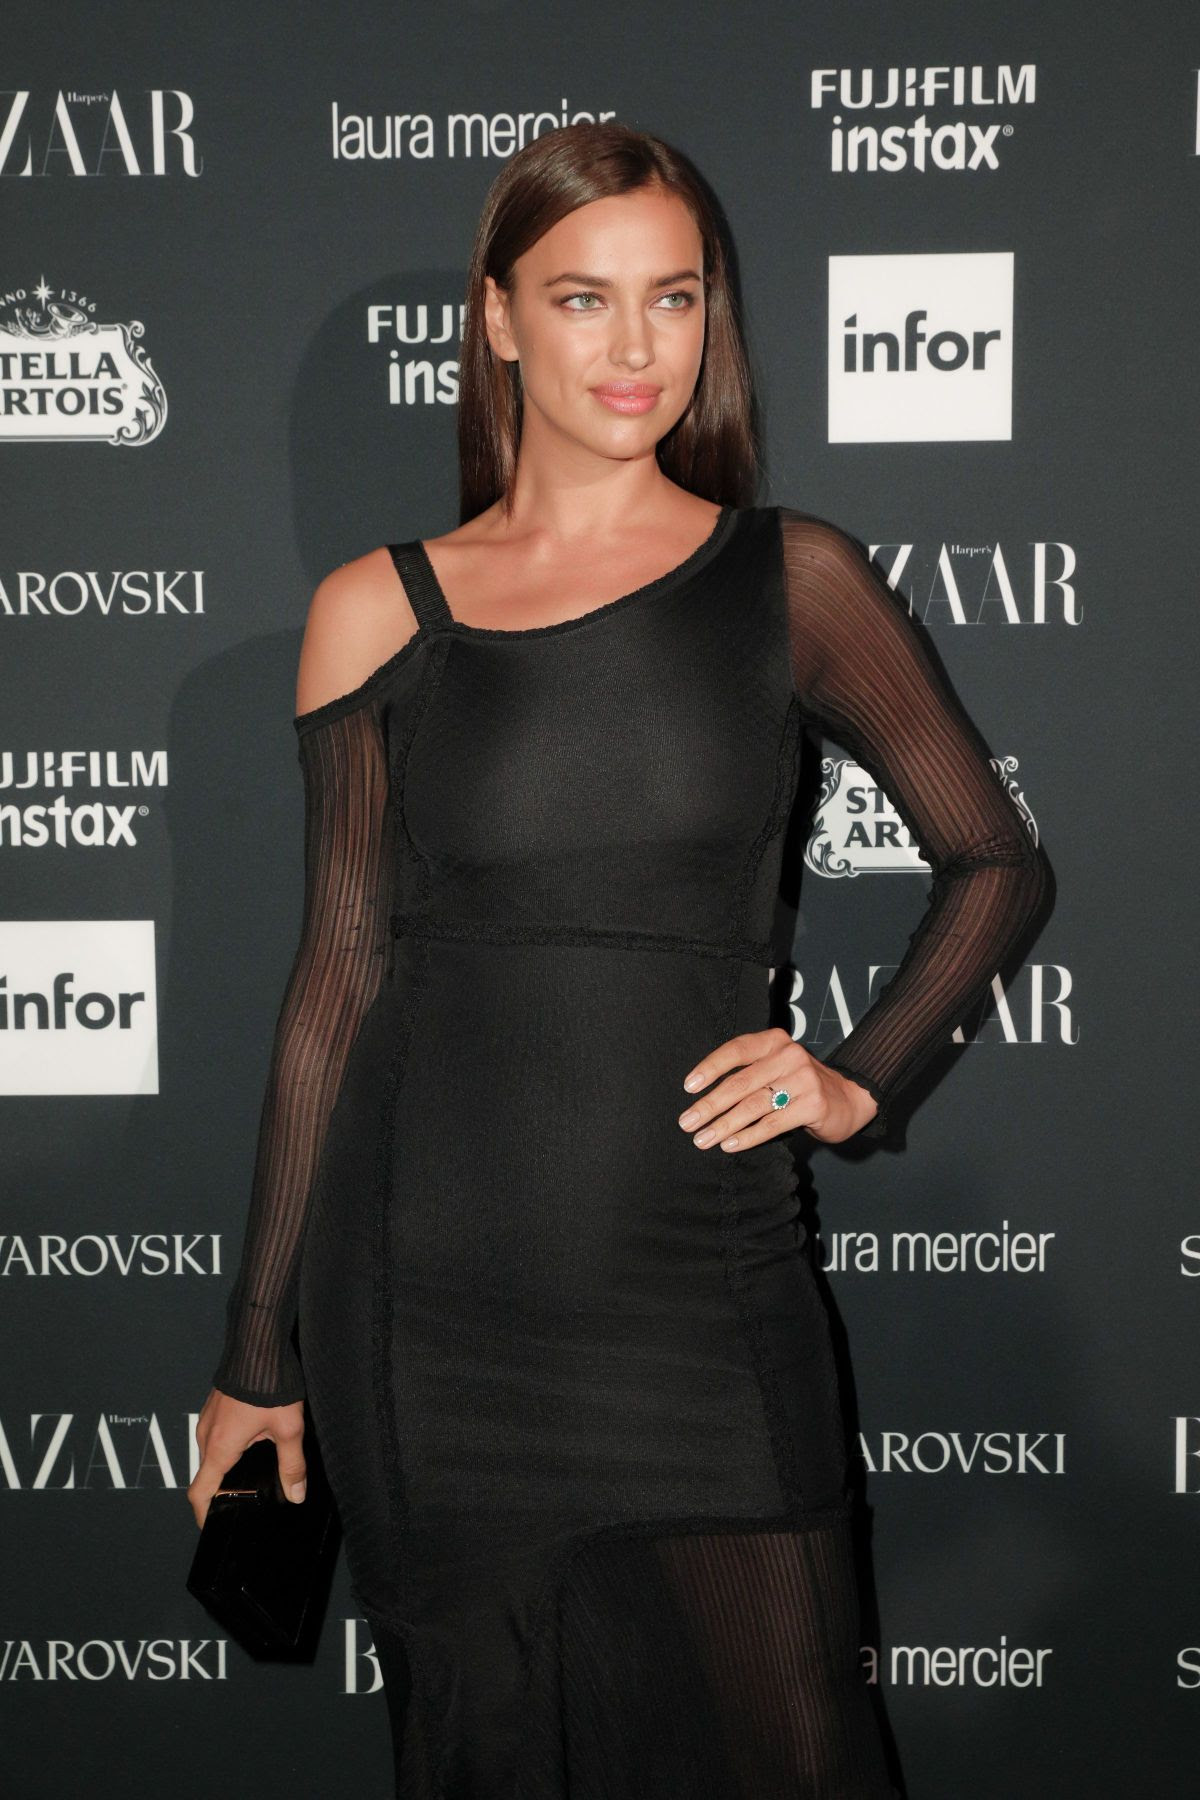 IRINA SHAYK at Harper's Bazaar Icons Party in New York 09/08/2017